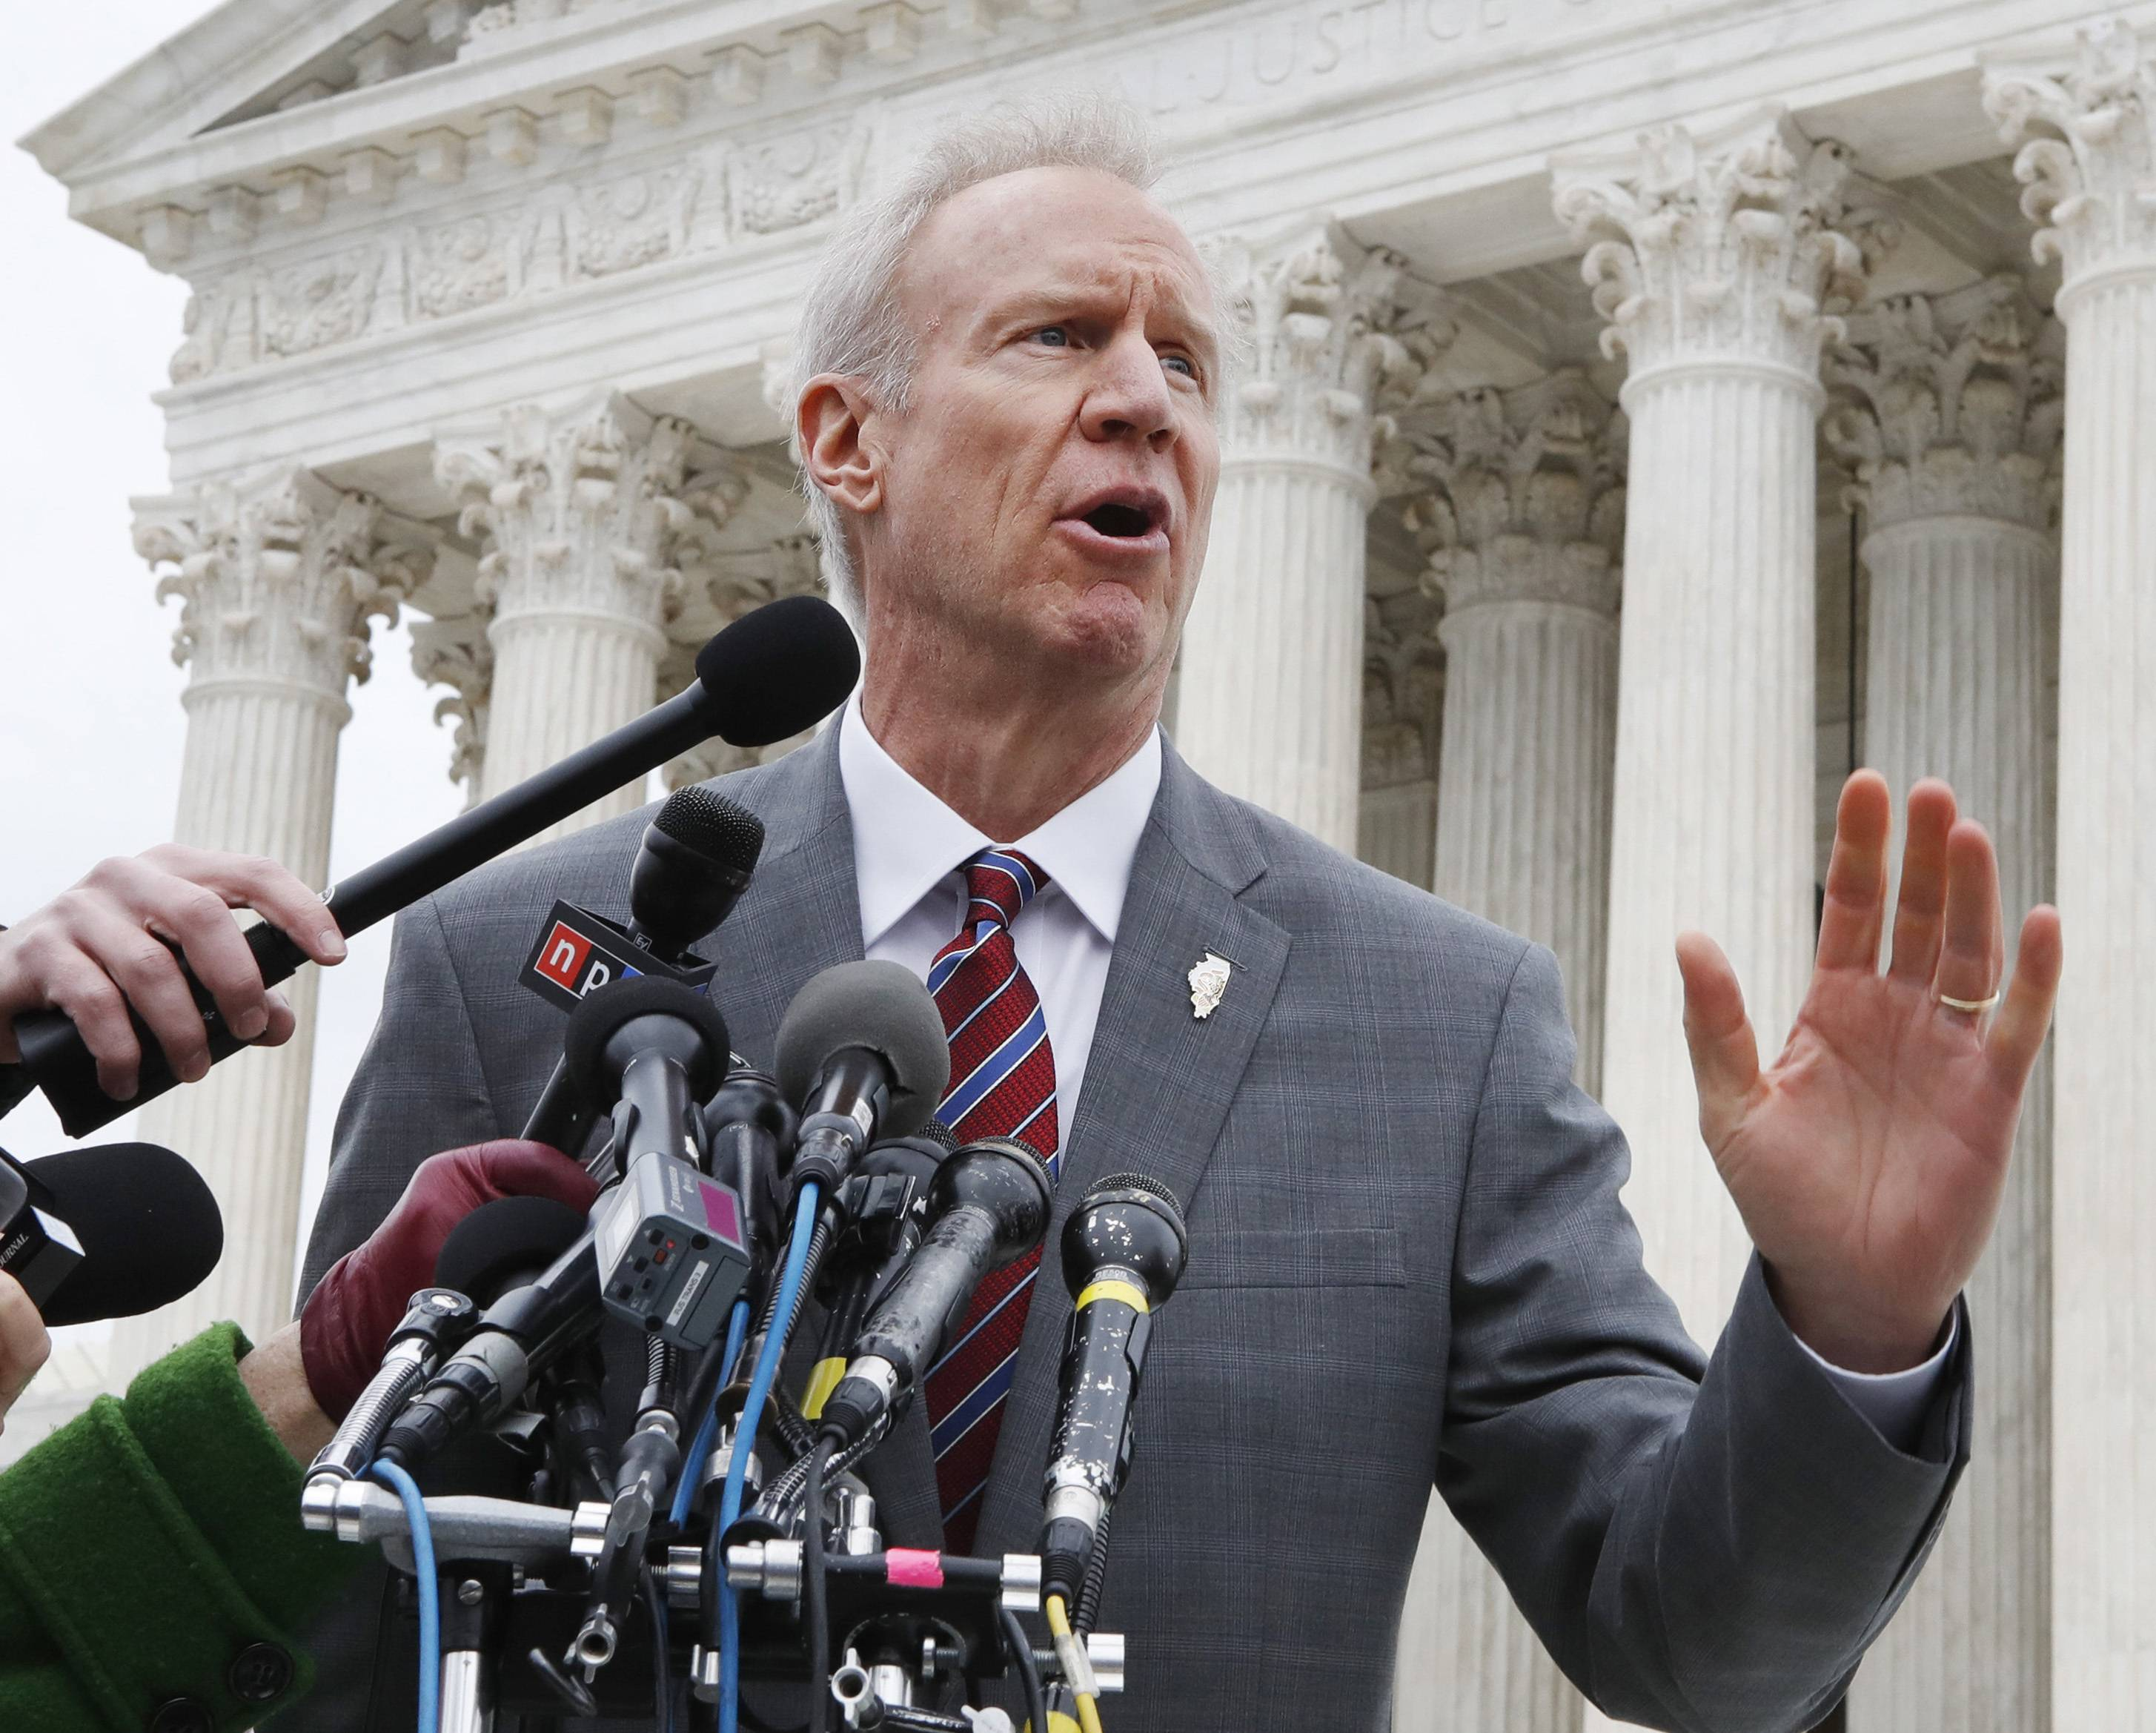 Gov. Bruce Rauner plans to veto legislation that would require gun retailers to be licensed by the state of Illinois.